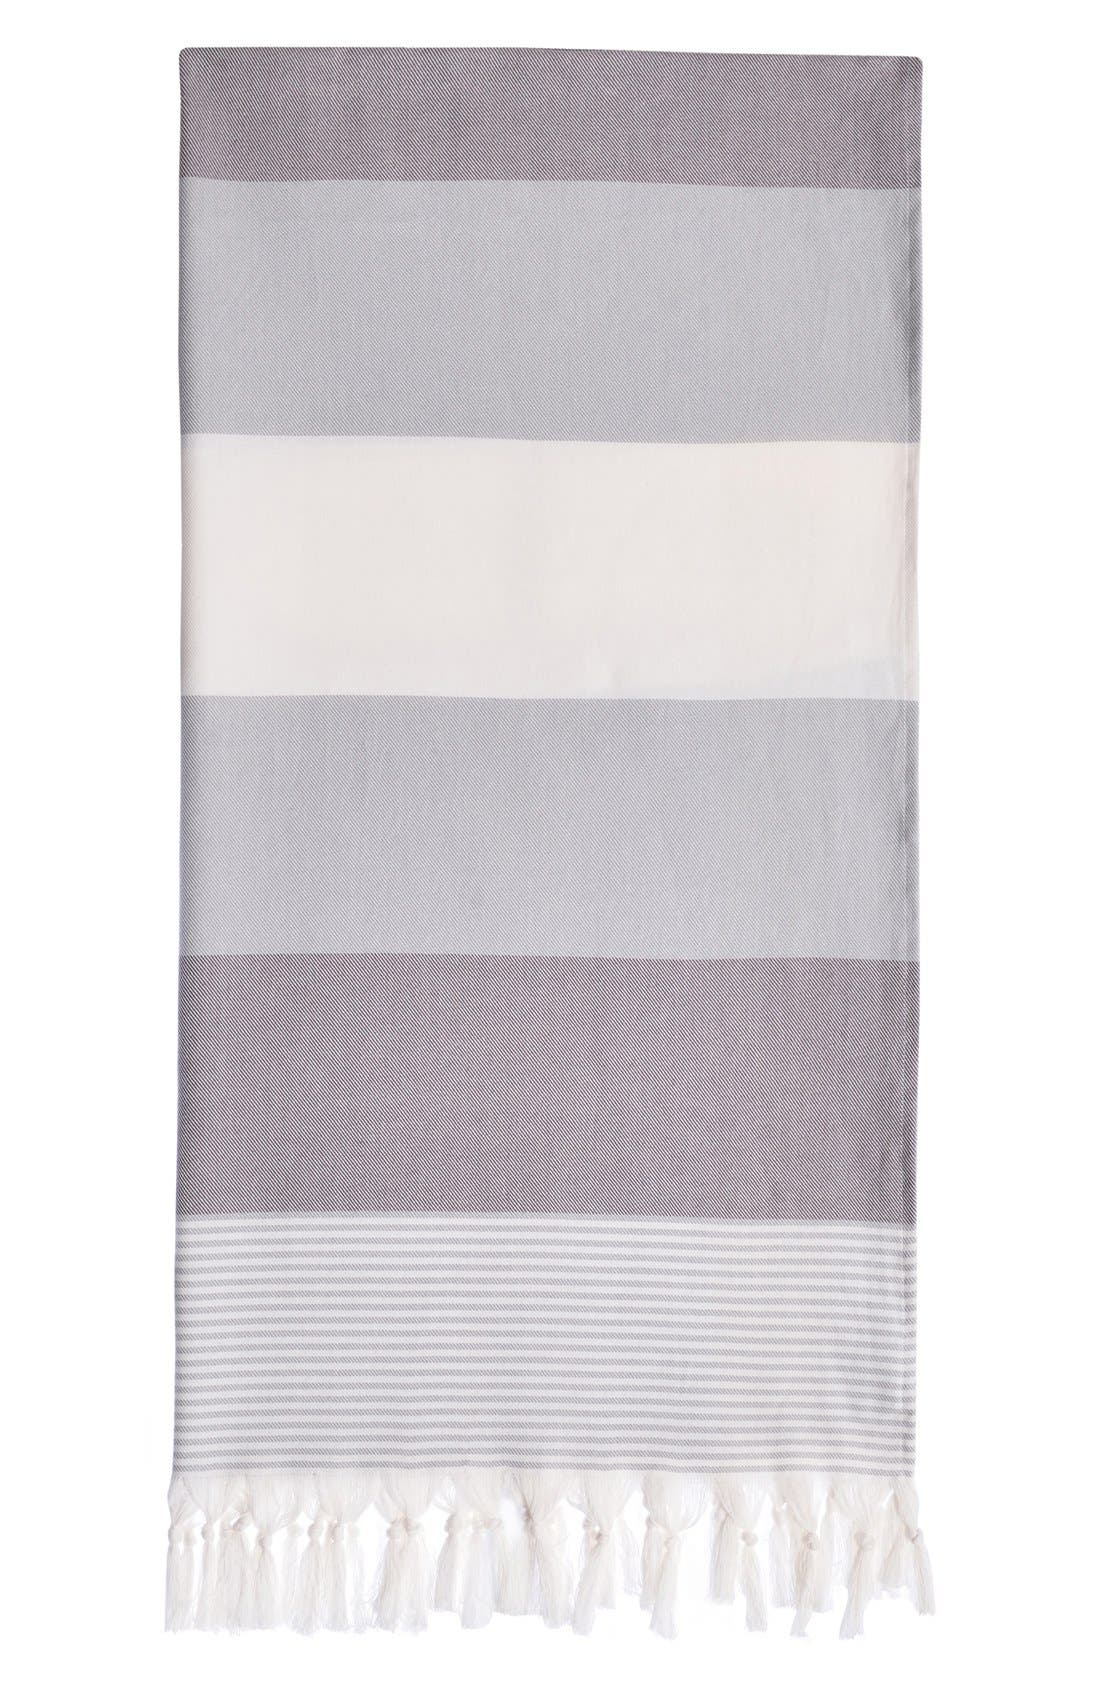 Alternate Image 1 Selected - Linum Home Textiles 'Sea Waves' Turkish Pestemal Towel